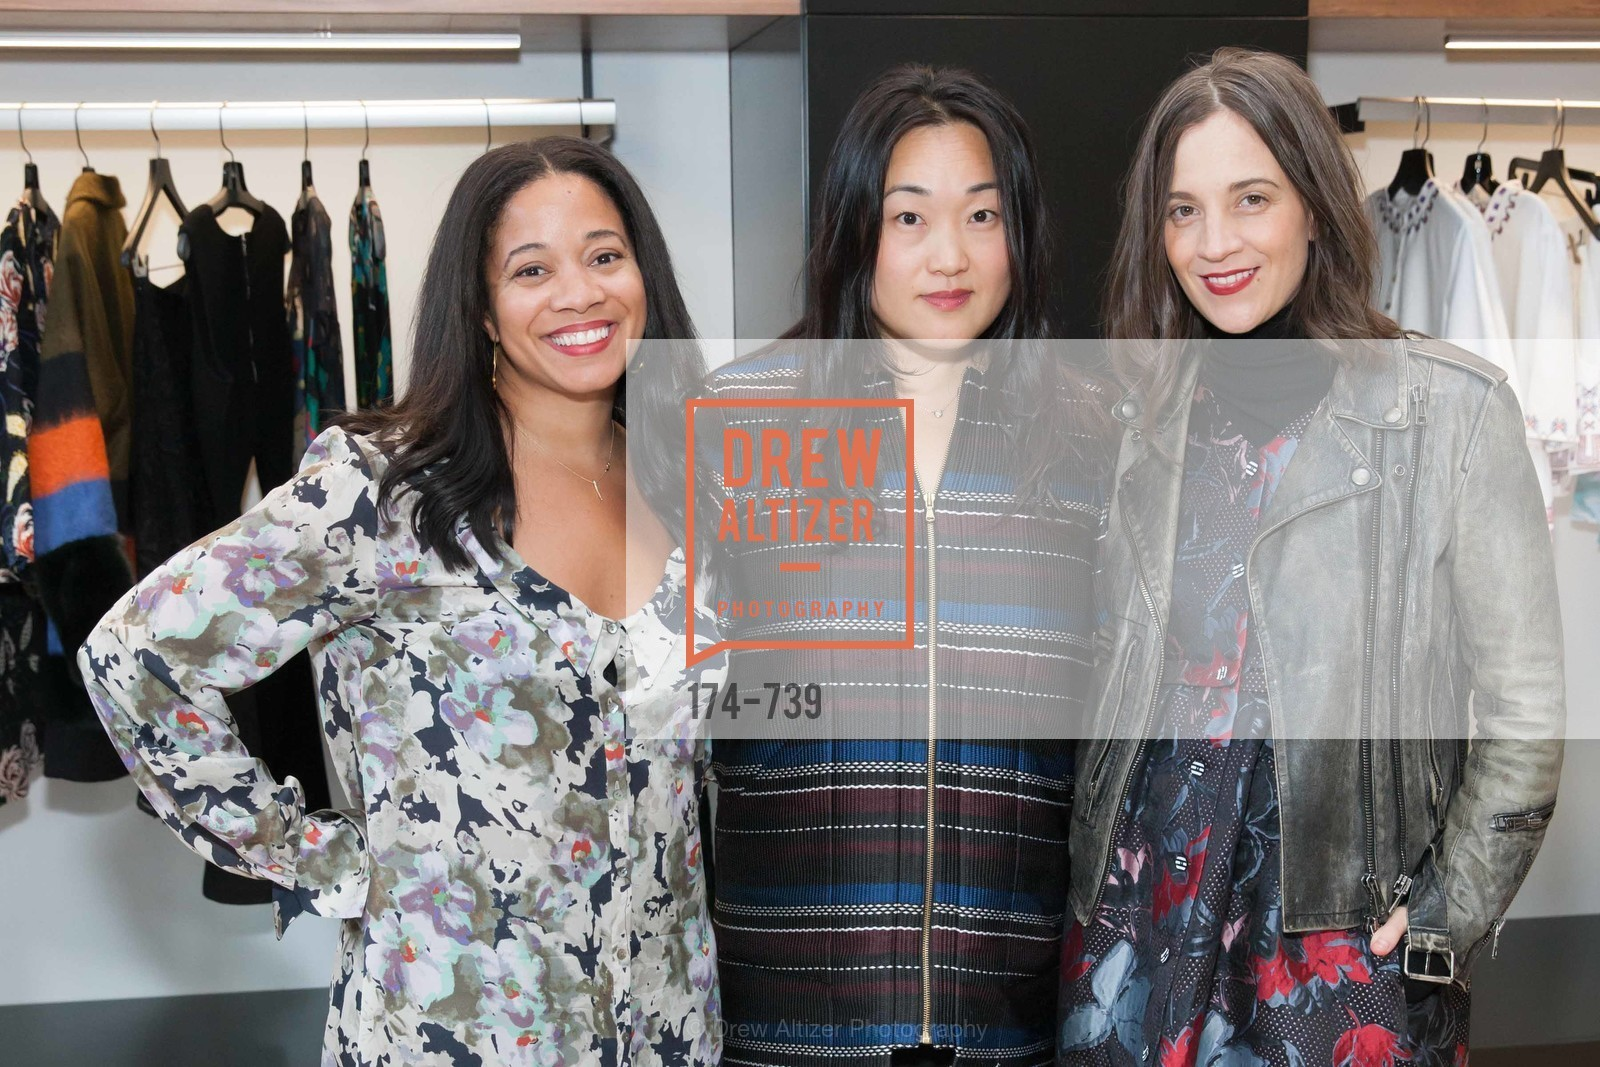 Maloni Goss, Mary Song, Erin Beatty, BETTY LIN Store Opening - VIPS, US, May 19th, 2015,Drew Altizer, Drew Altizer Photography, full-service agency, private events, San Francisco photographer, photographer california